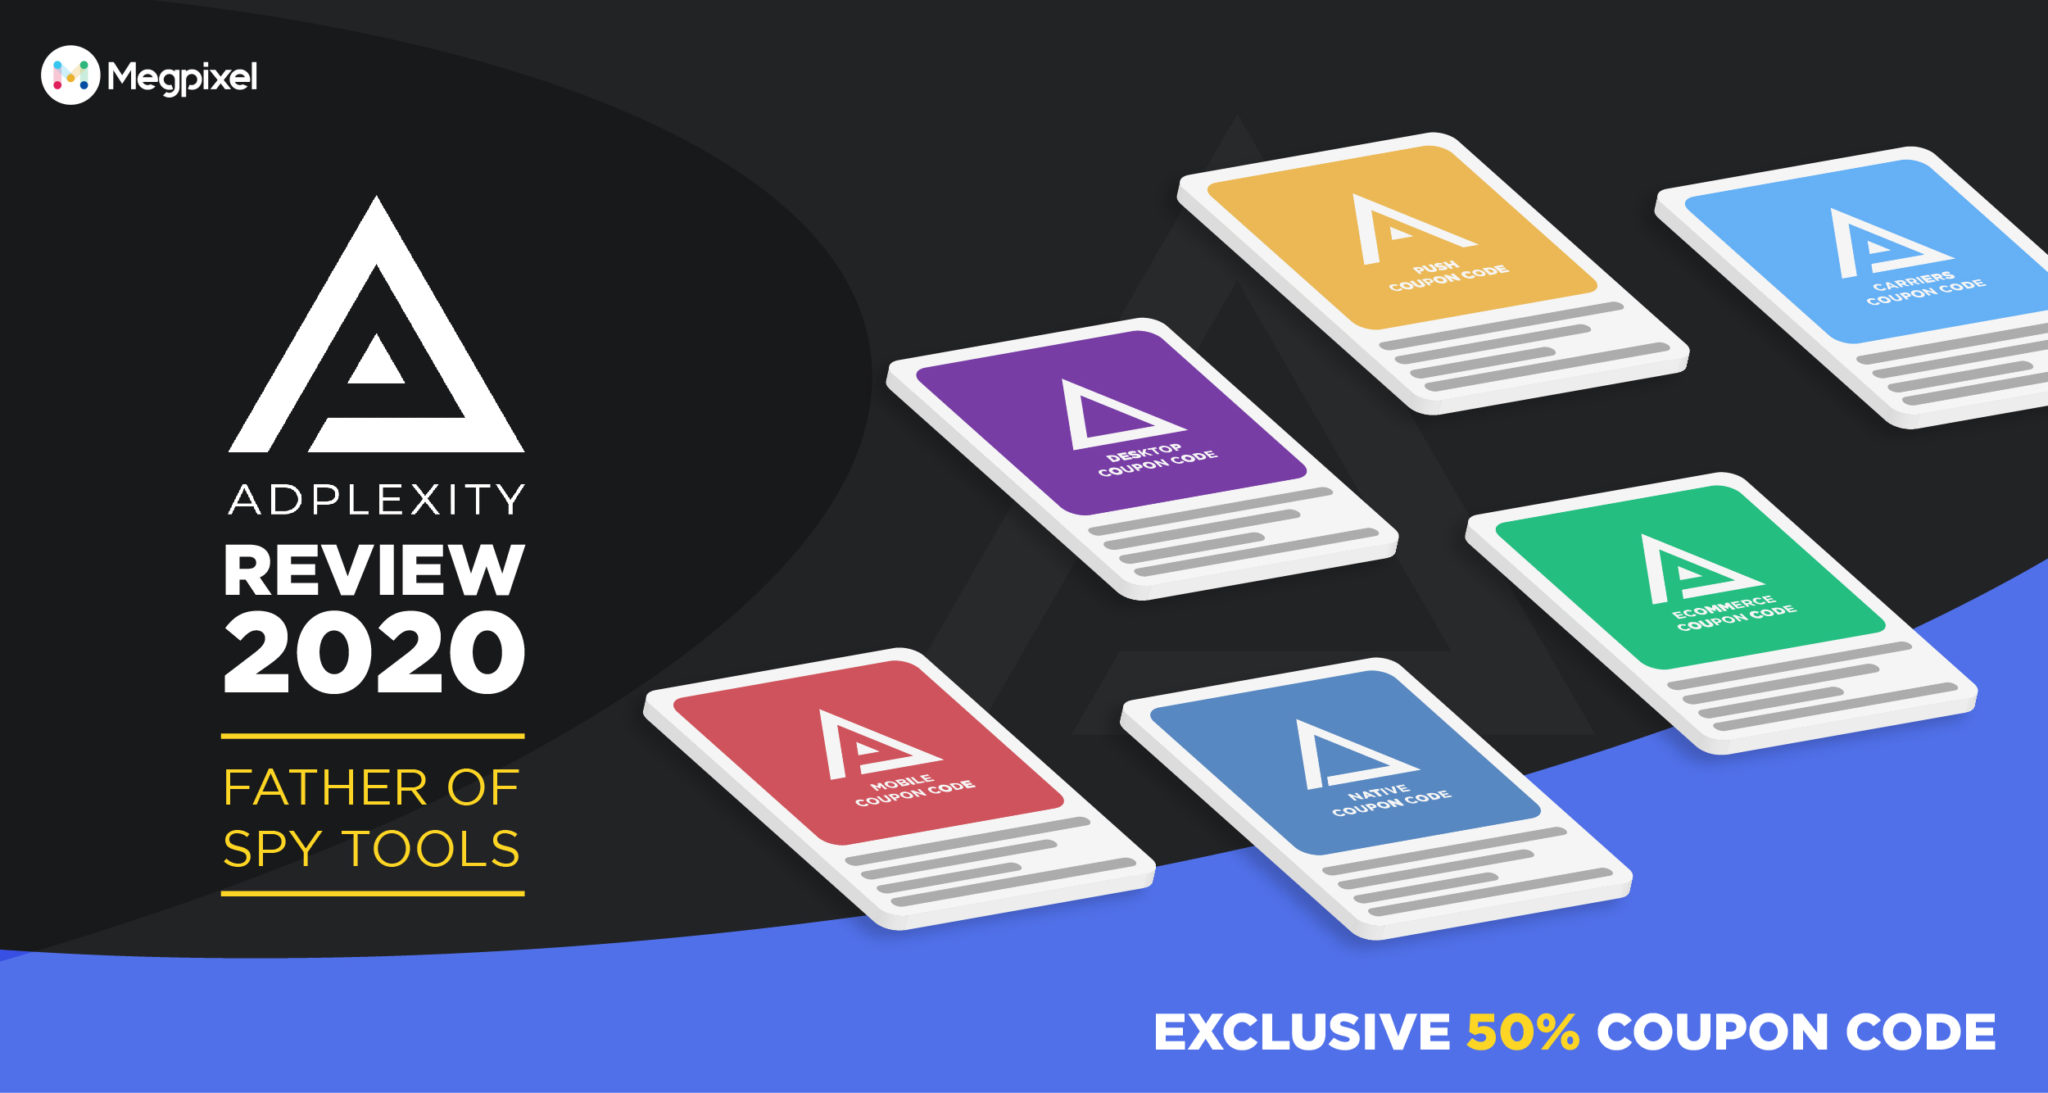 Adplexity Review 2019 - Exclusive 50% Coupon Code + Father of Spy Tools